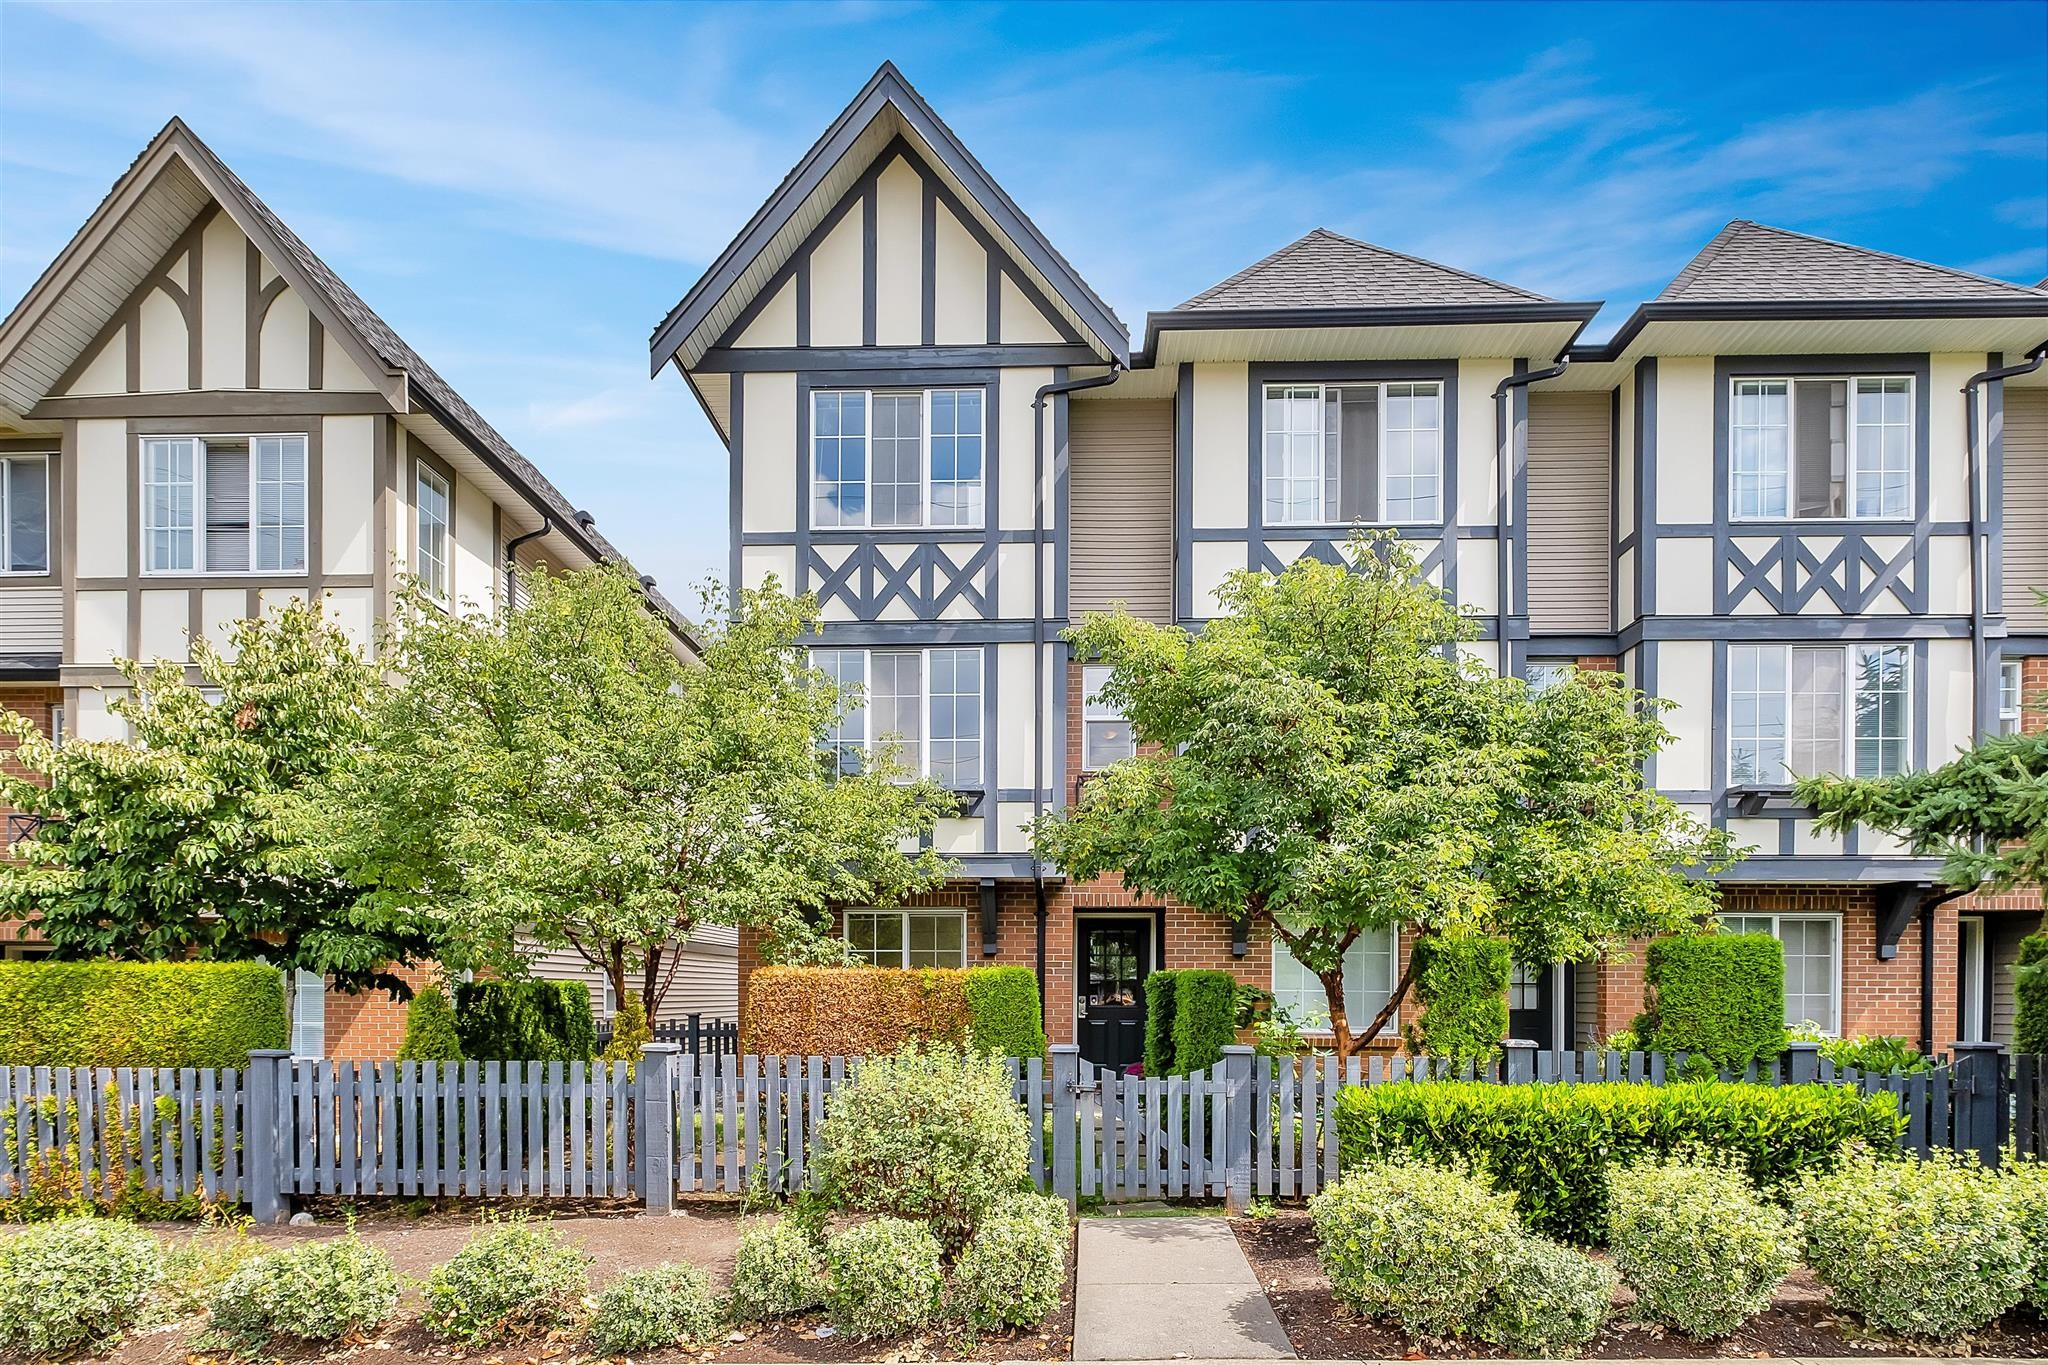 """Main Photo: 80 20875 80 Avenue in Langley: Willoughby Heights Townhouse for sale in """"PEPPERWOOD"""" : MLS®# R2608631"""